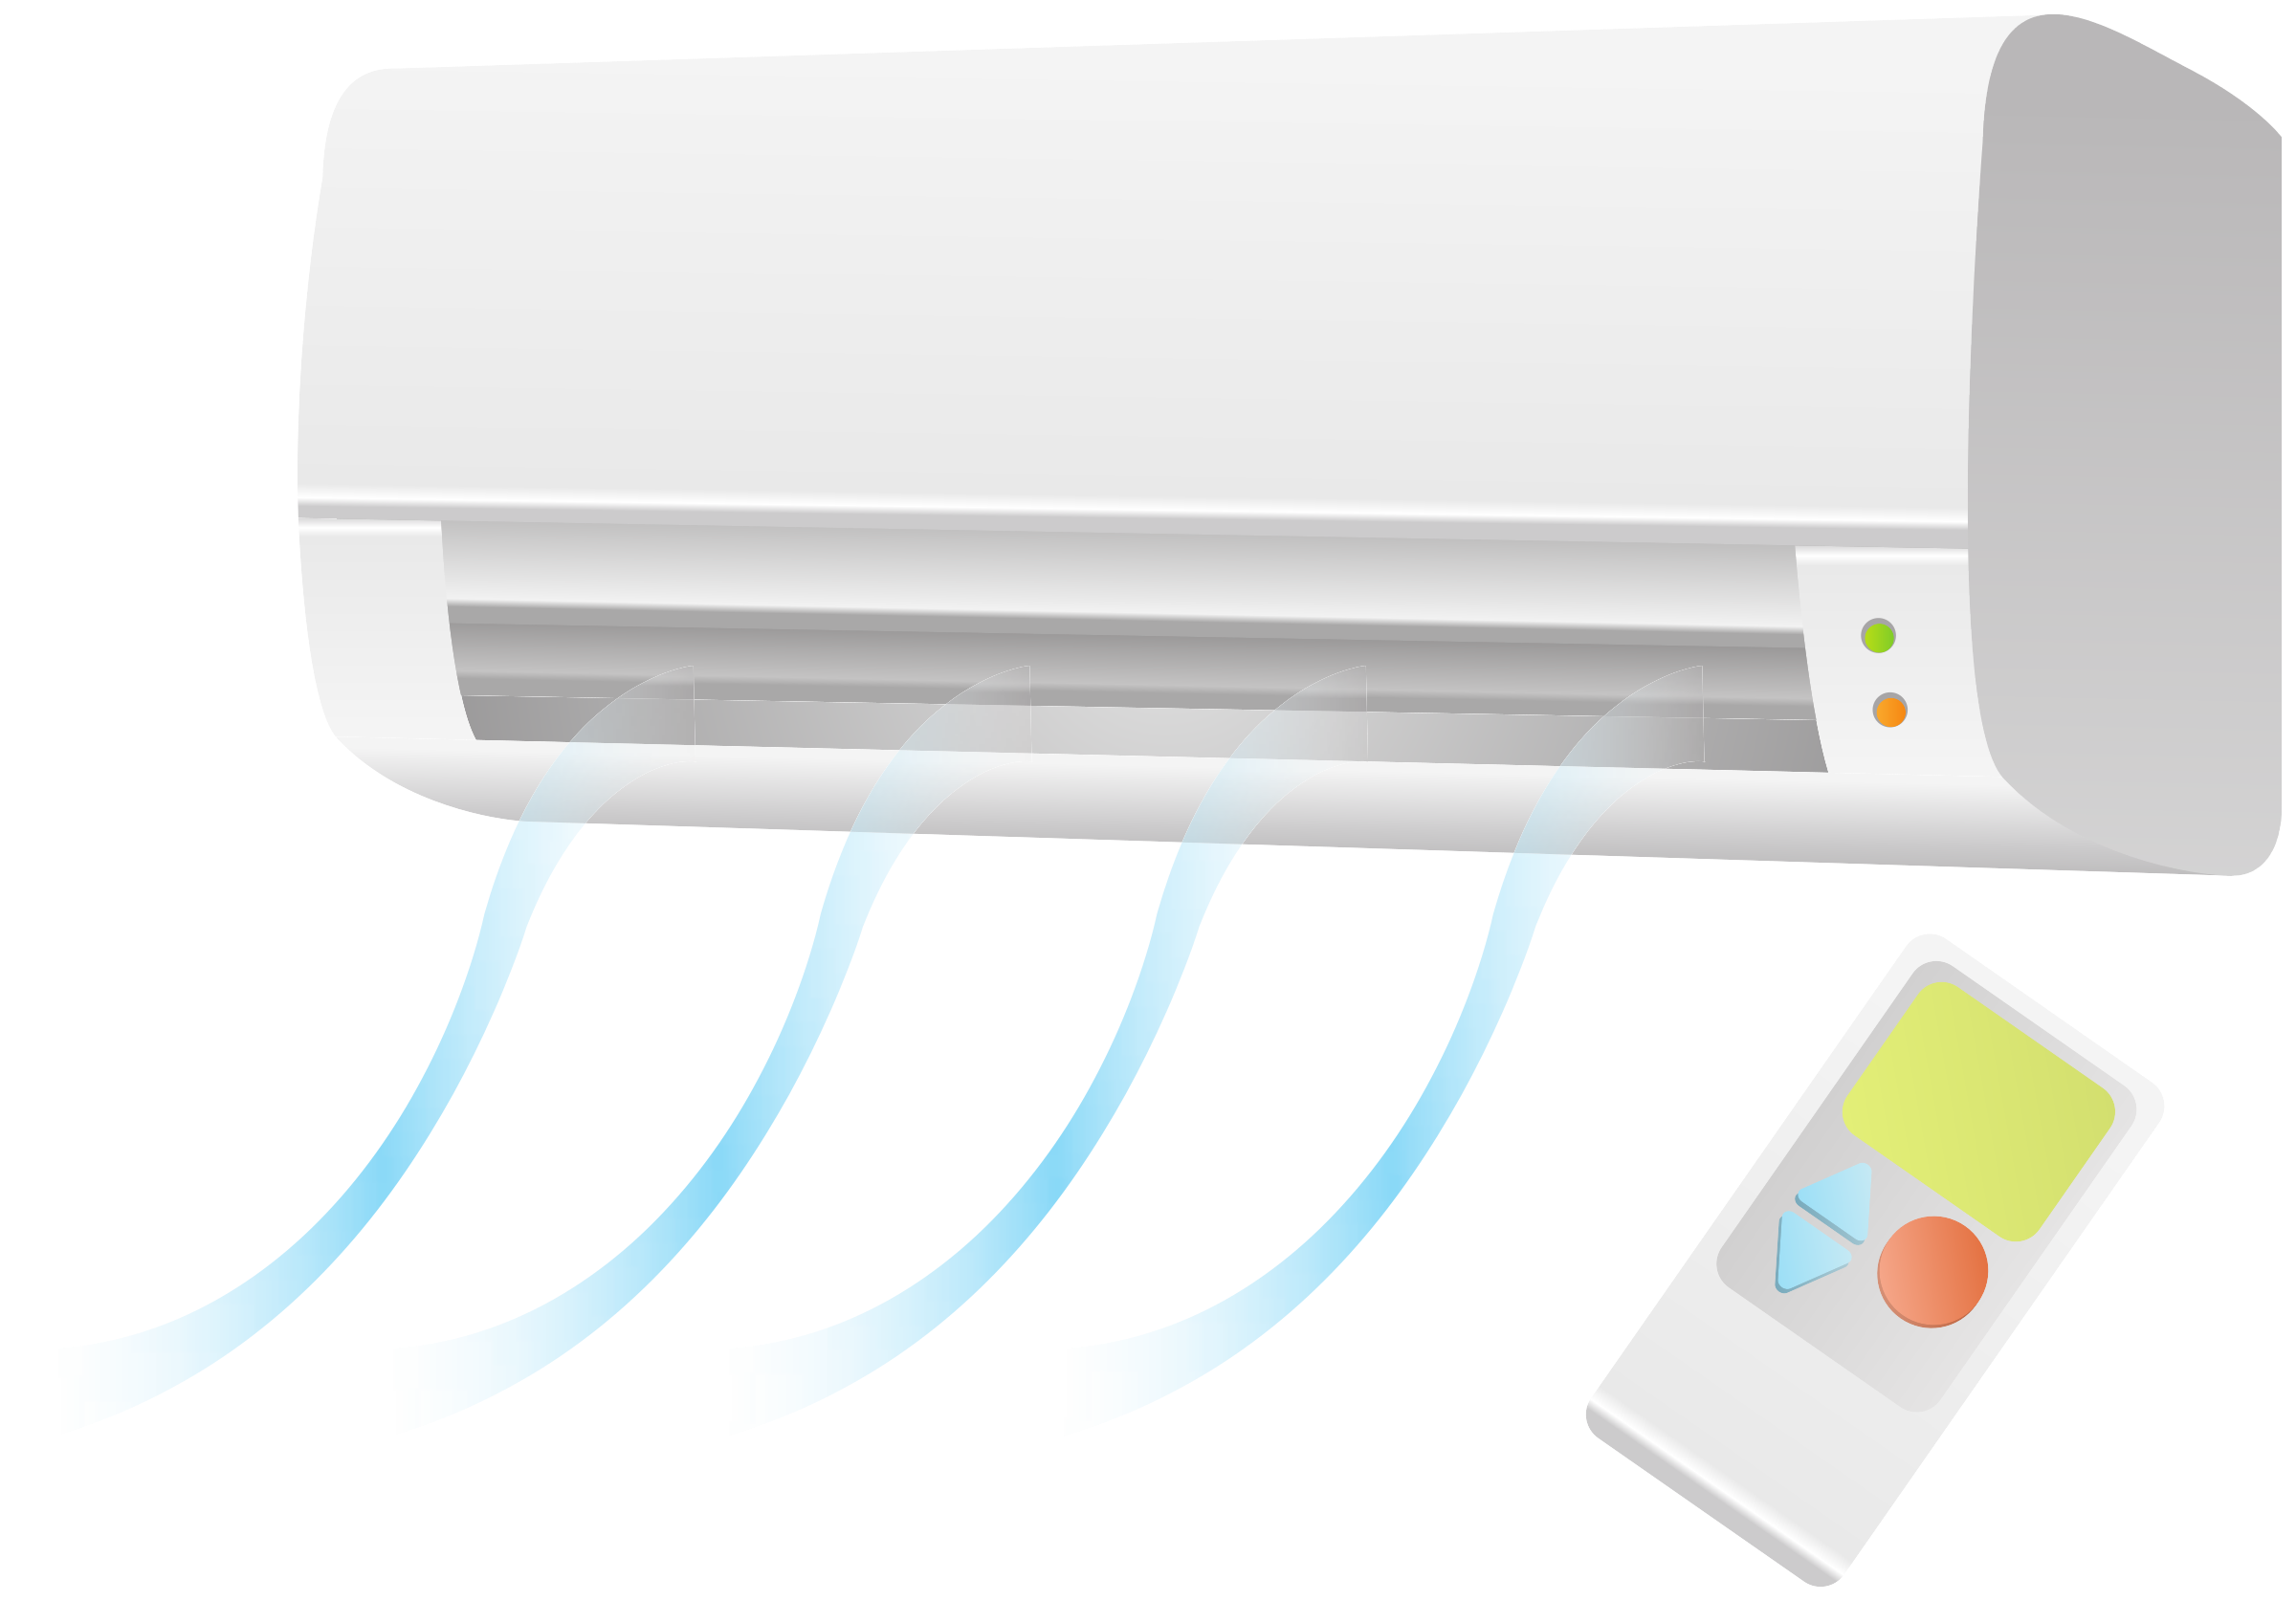 Air condition unit with remote by Juhele